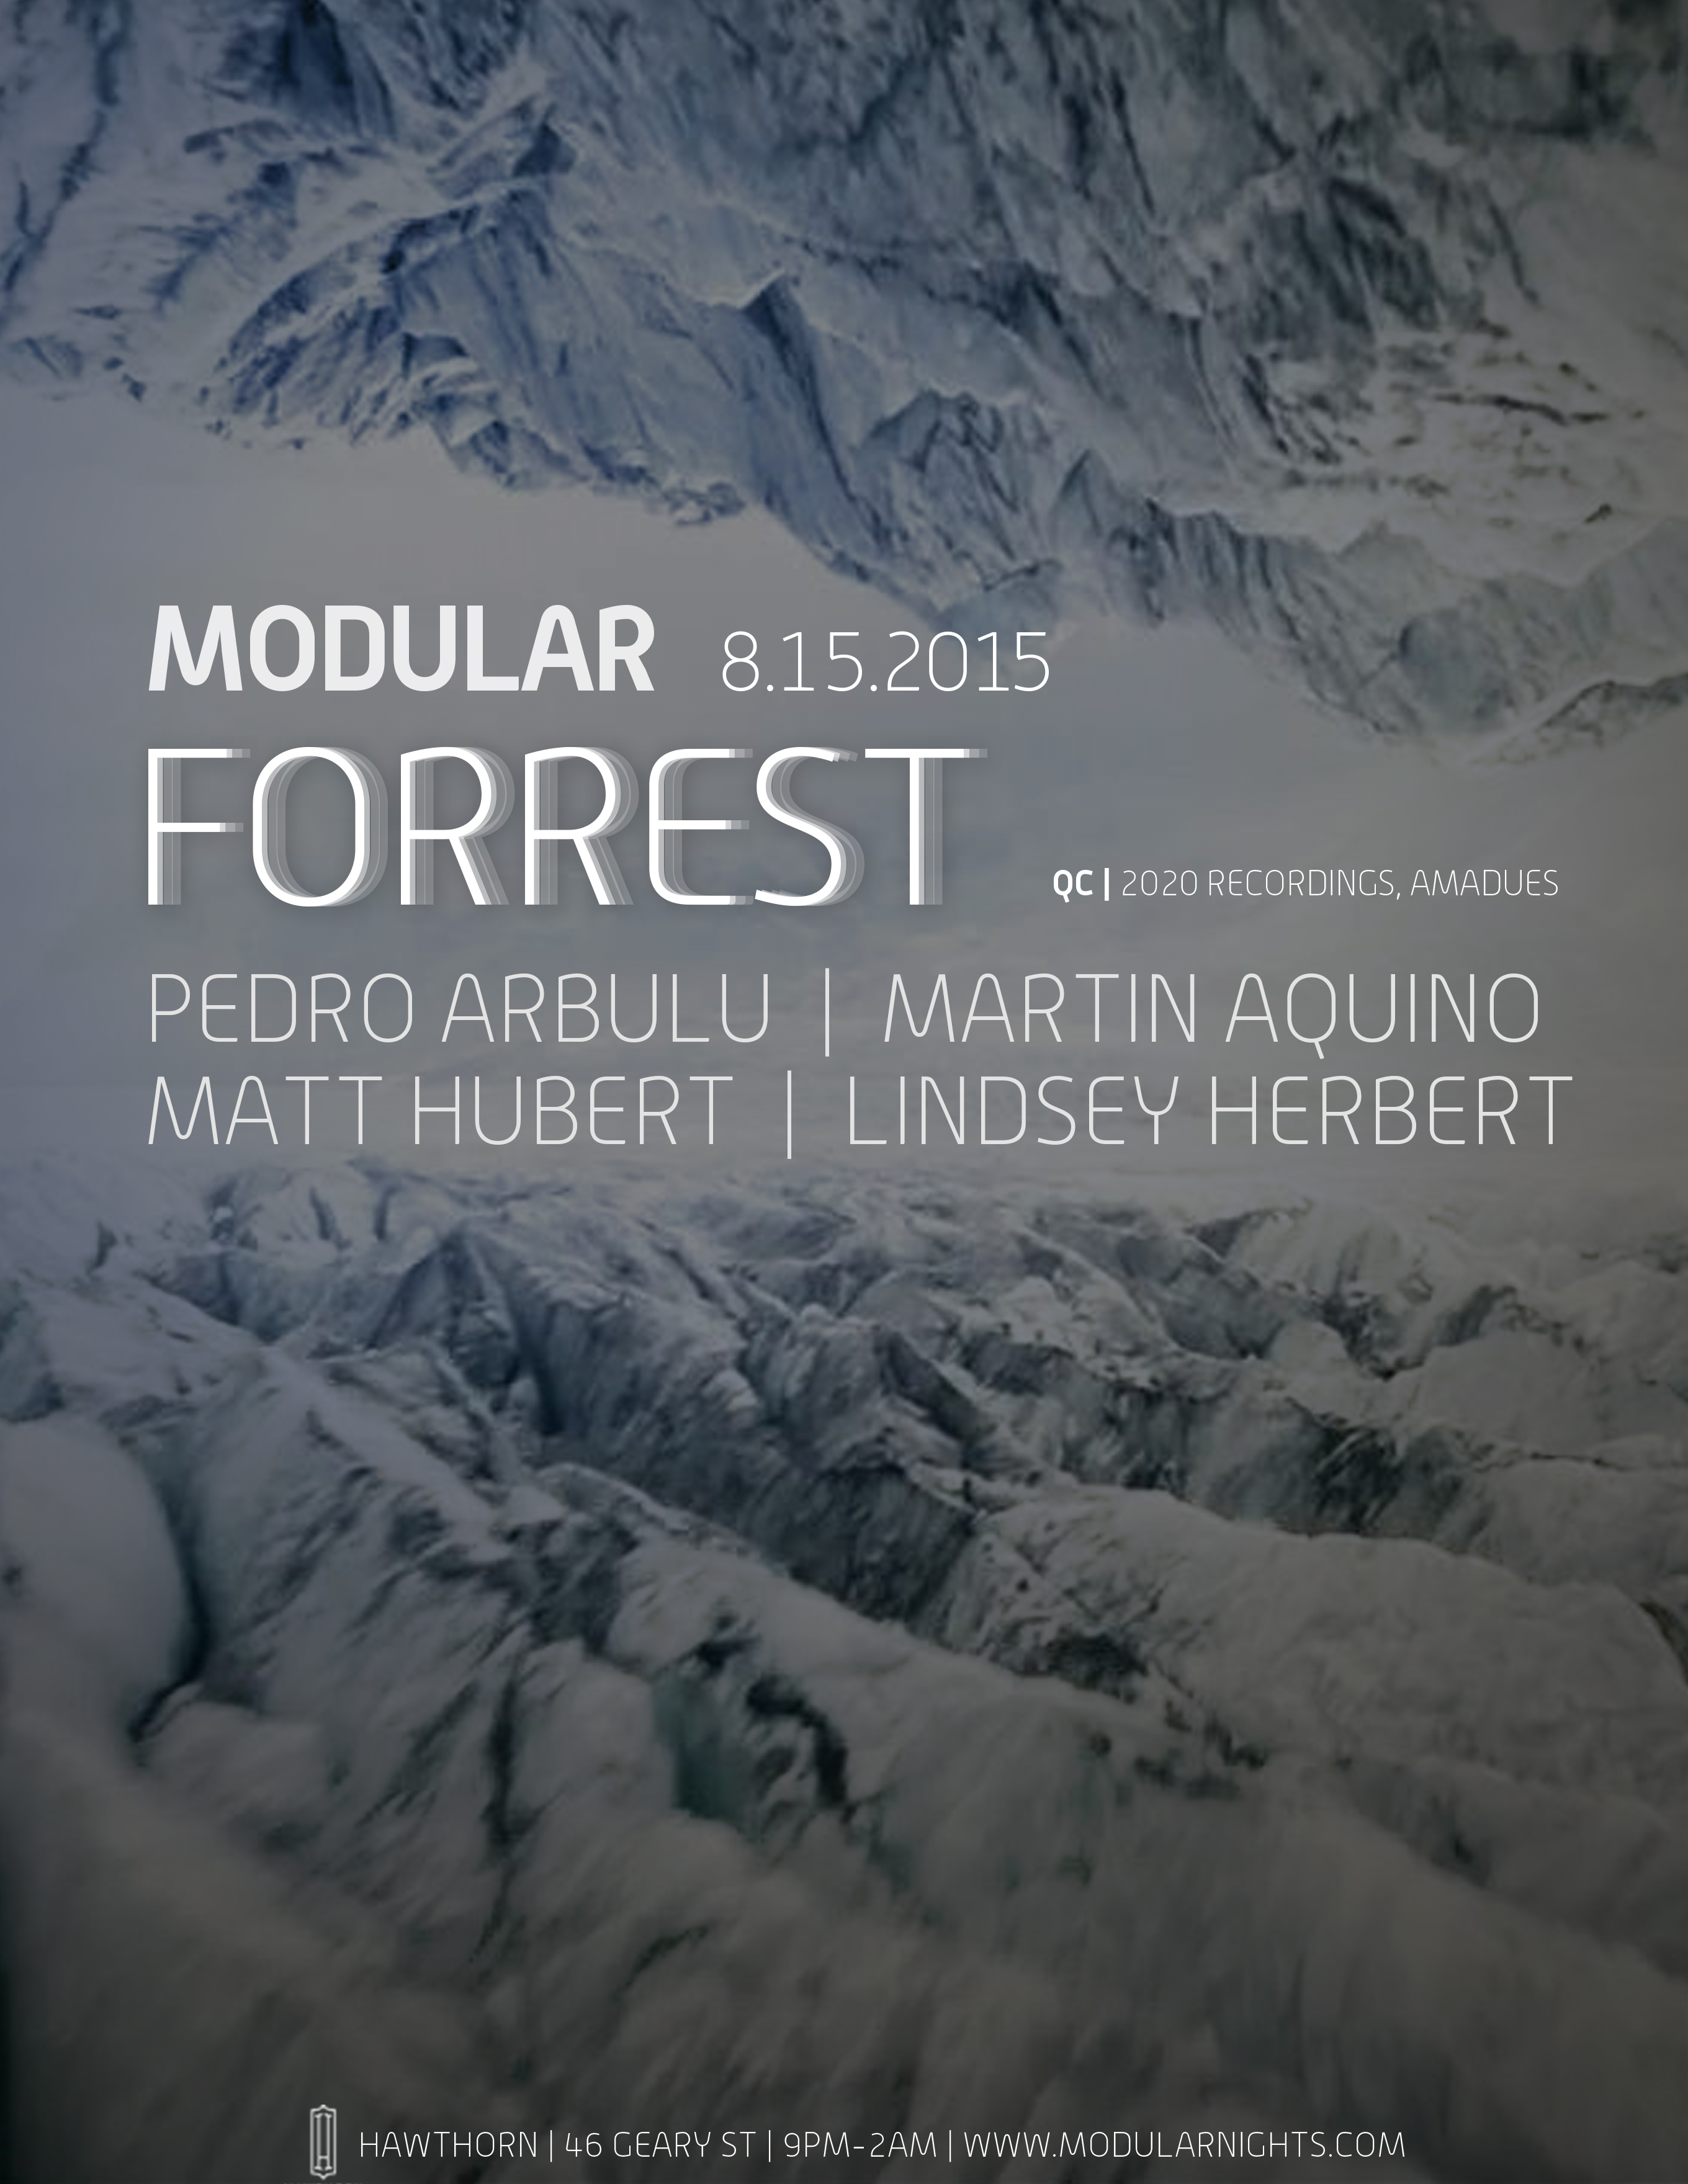 Forrest Modular Nights San Francisco